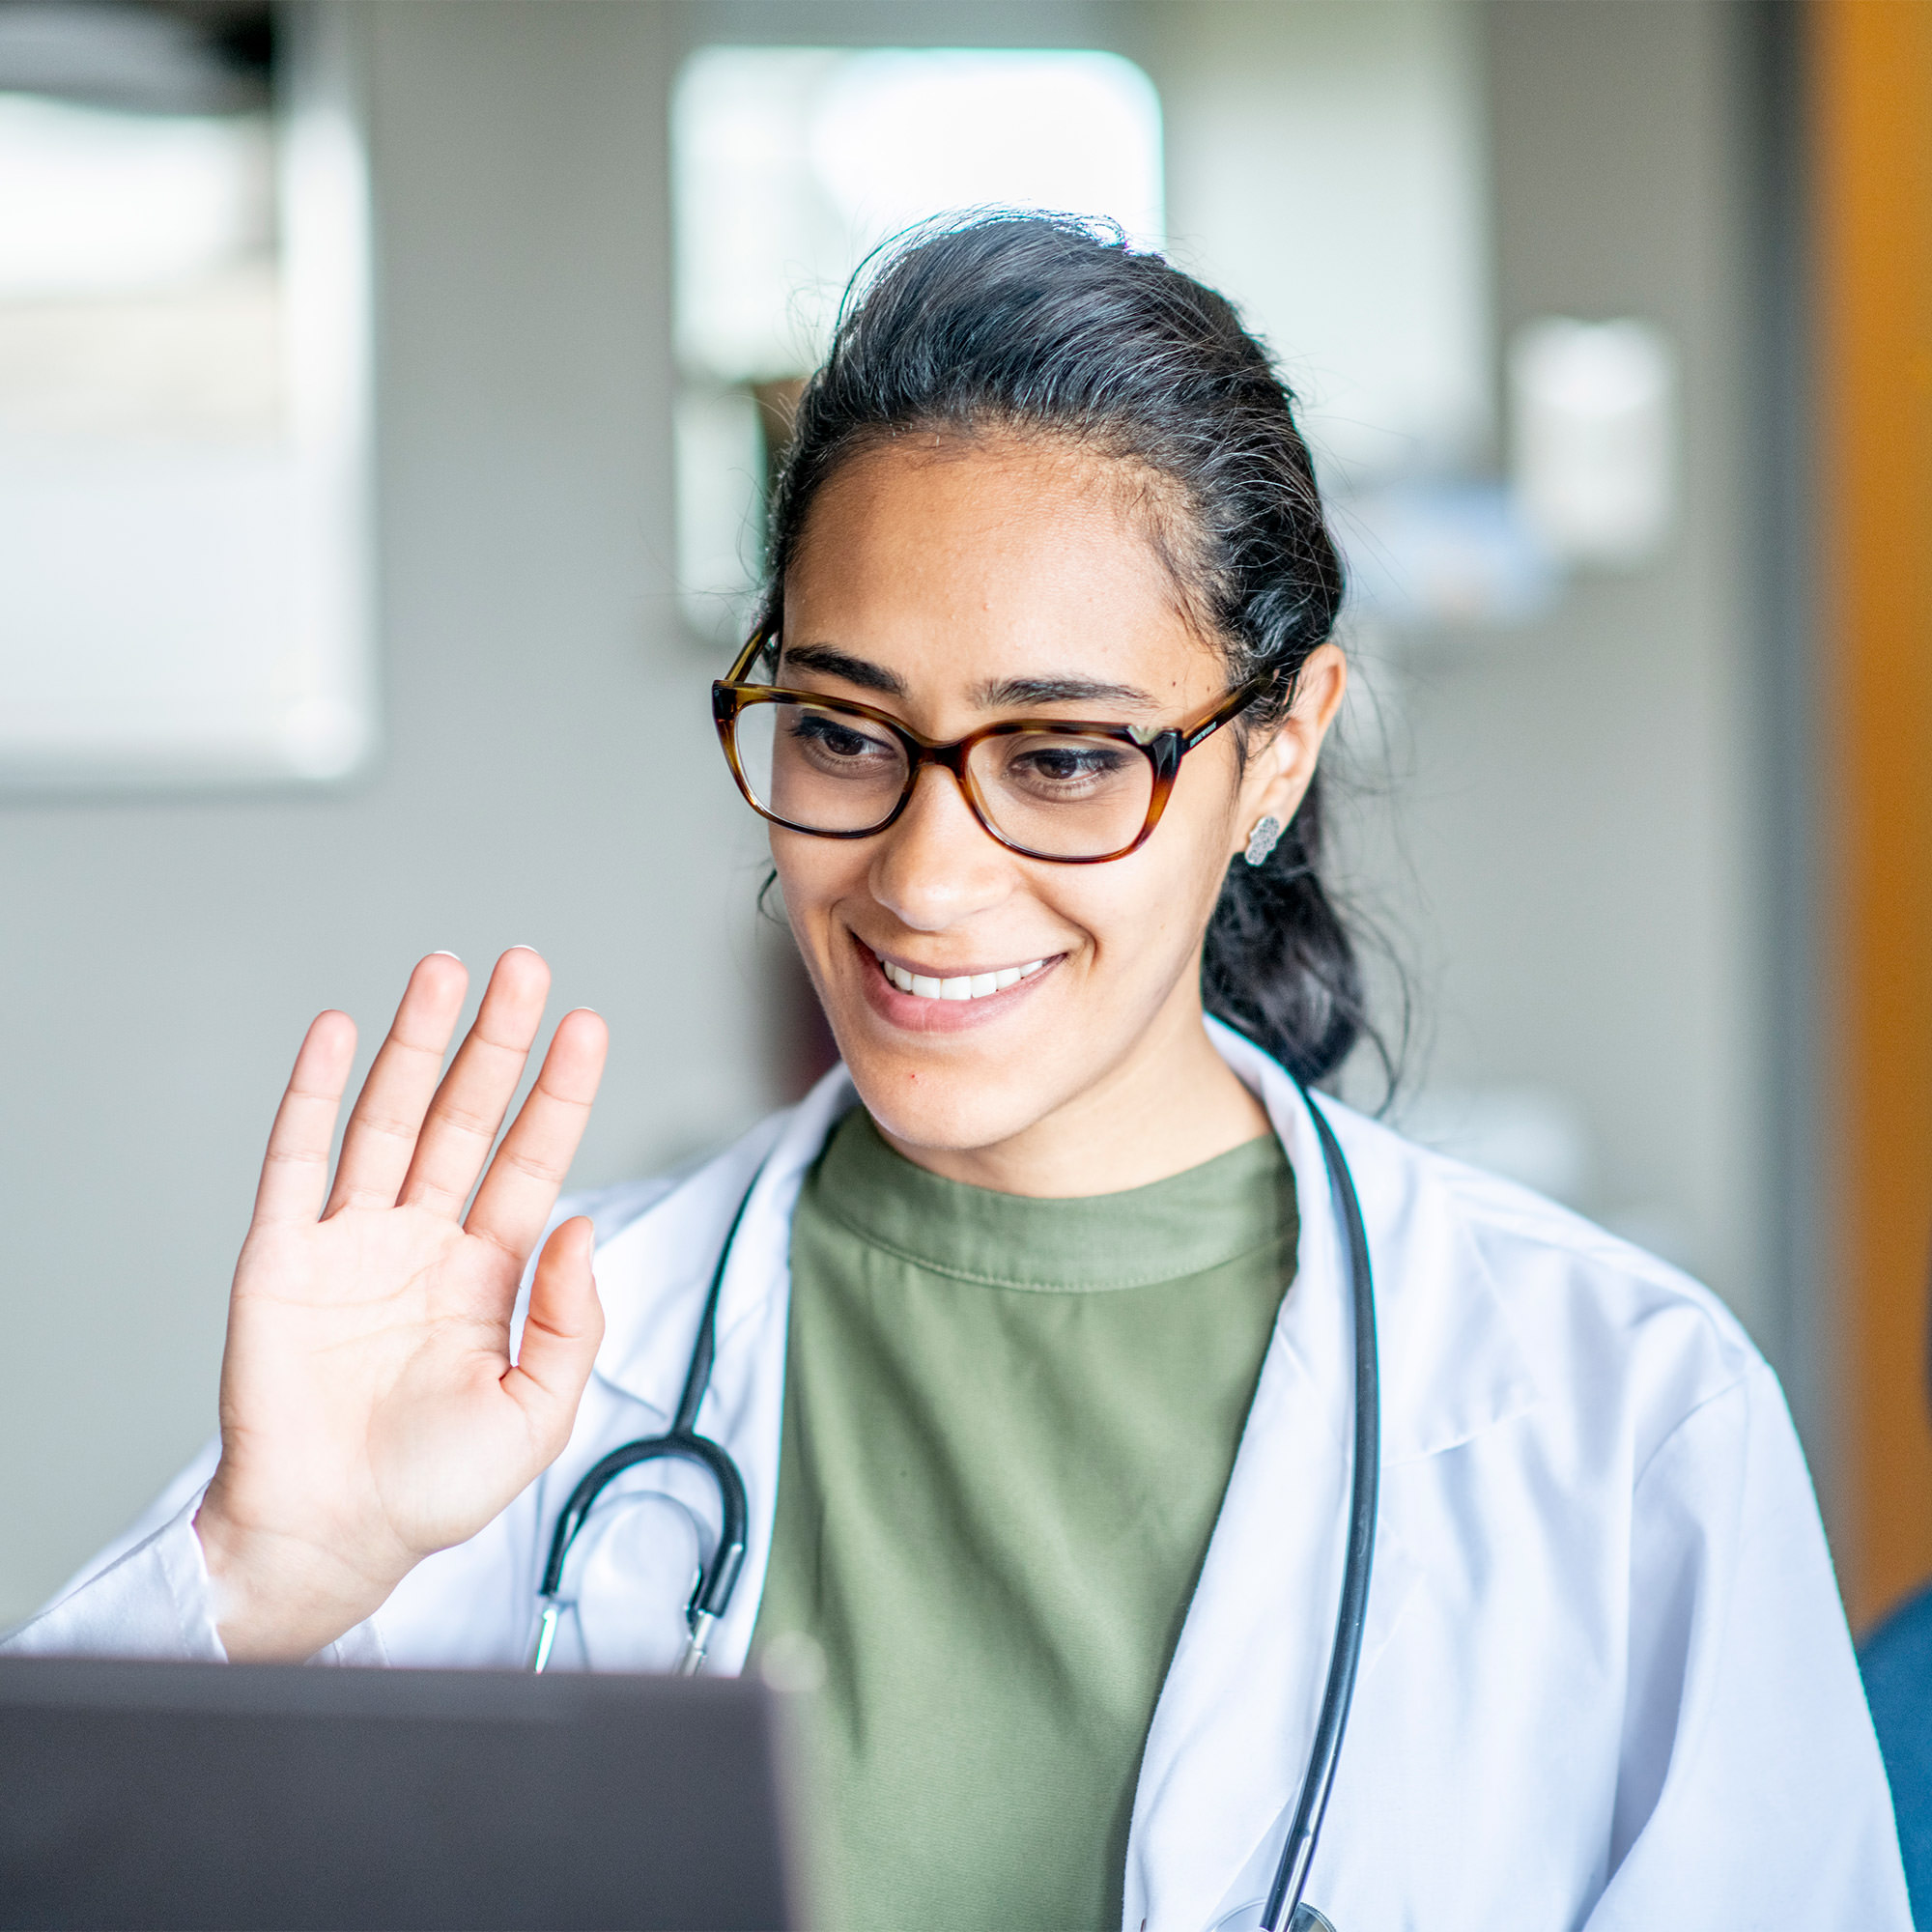 Bring your acute and specialty care to patients where they are, improve resource allocation and capture new revenue streams.